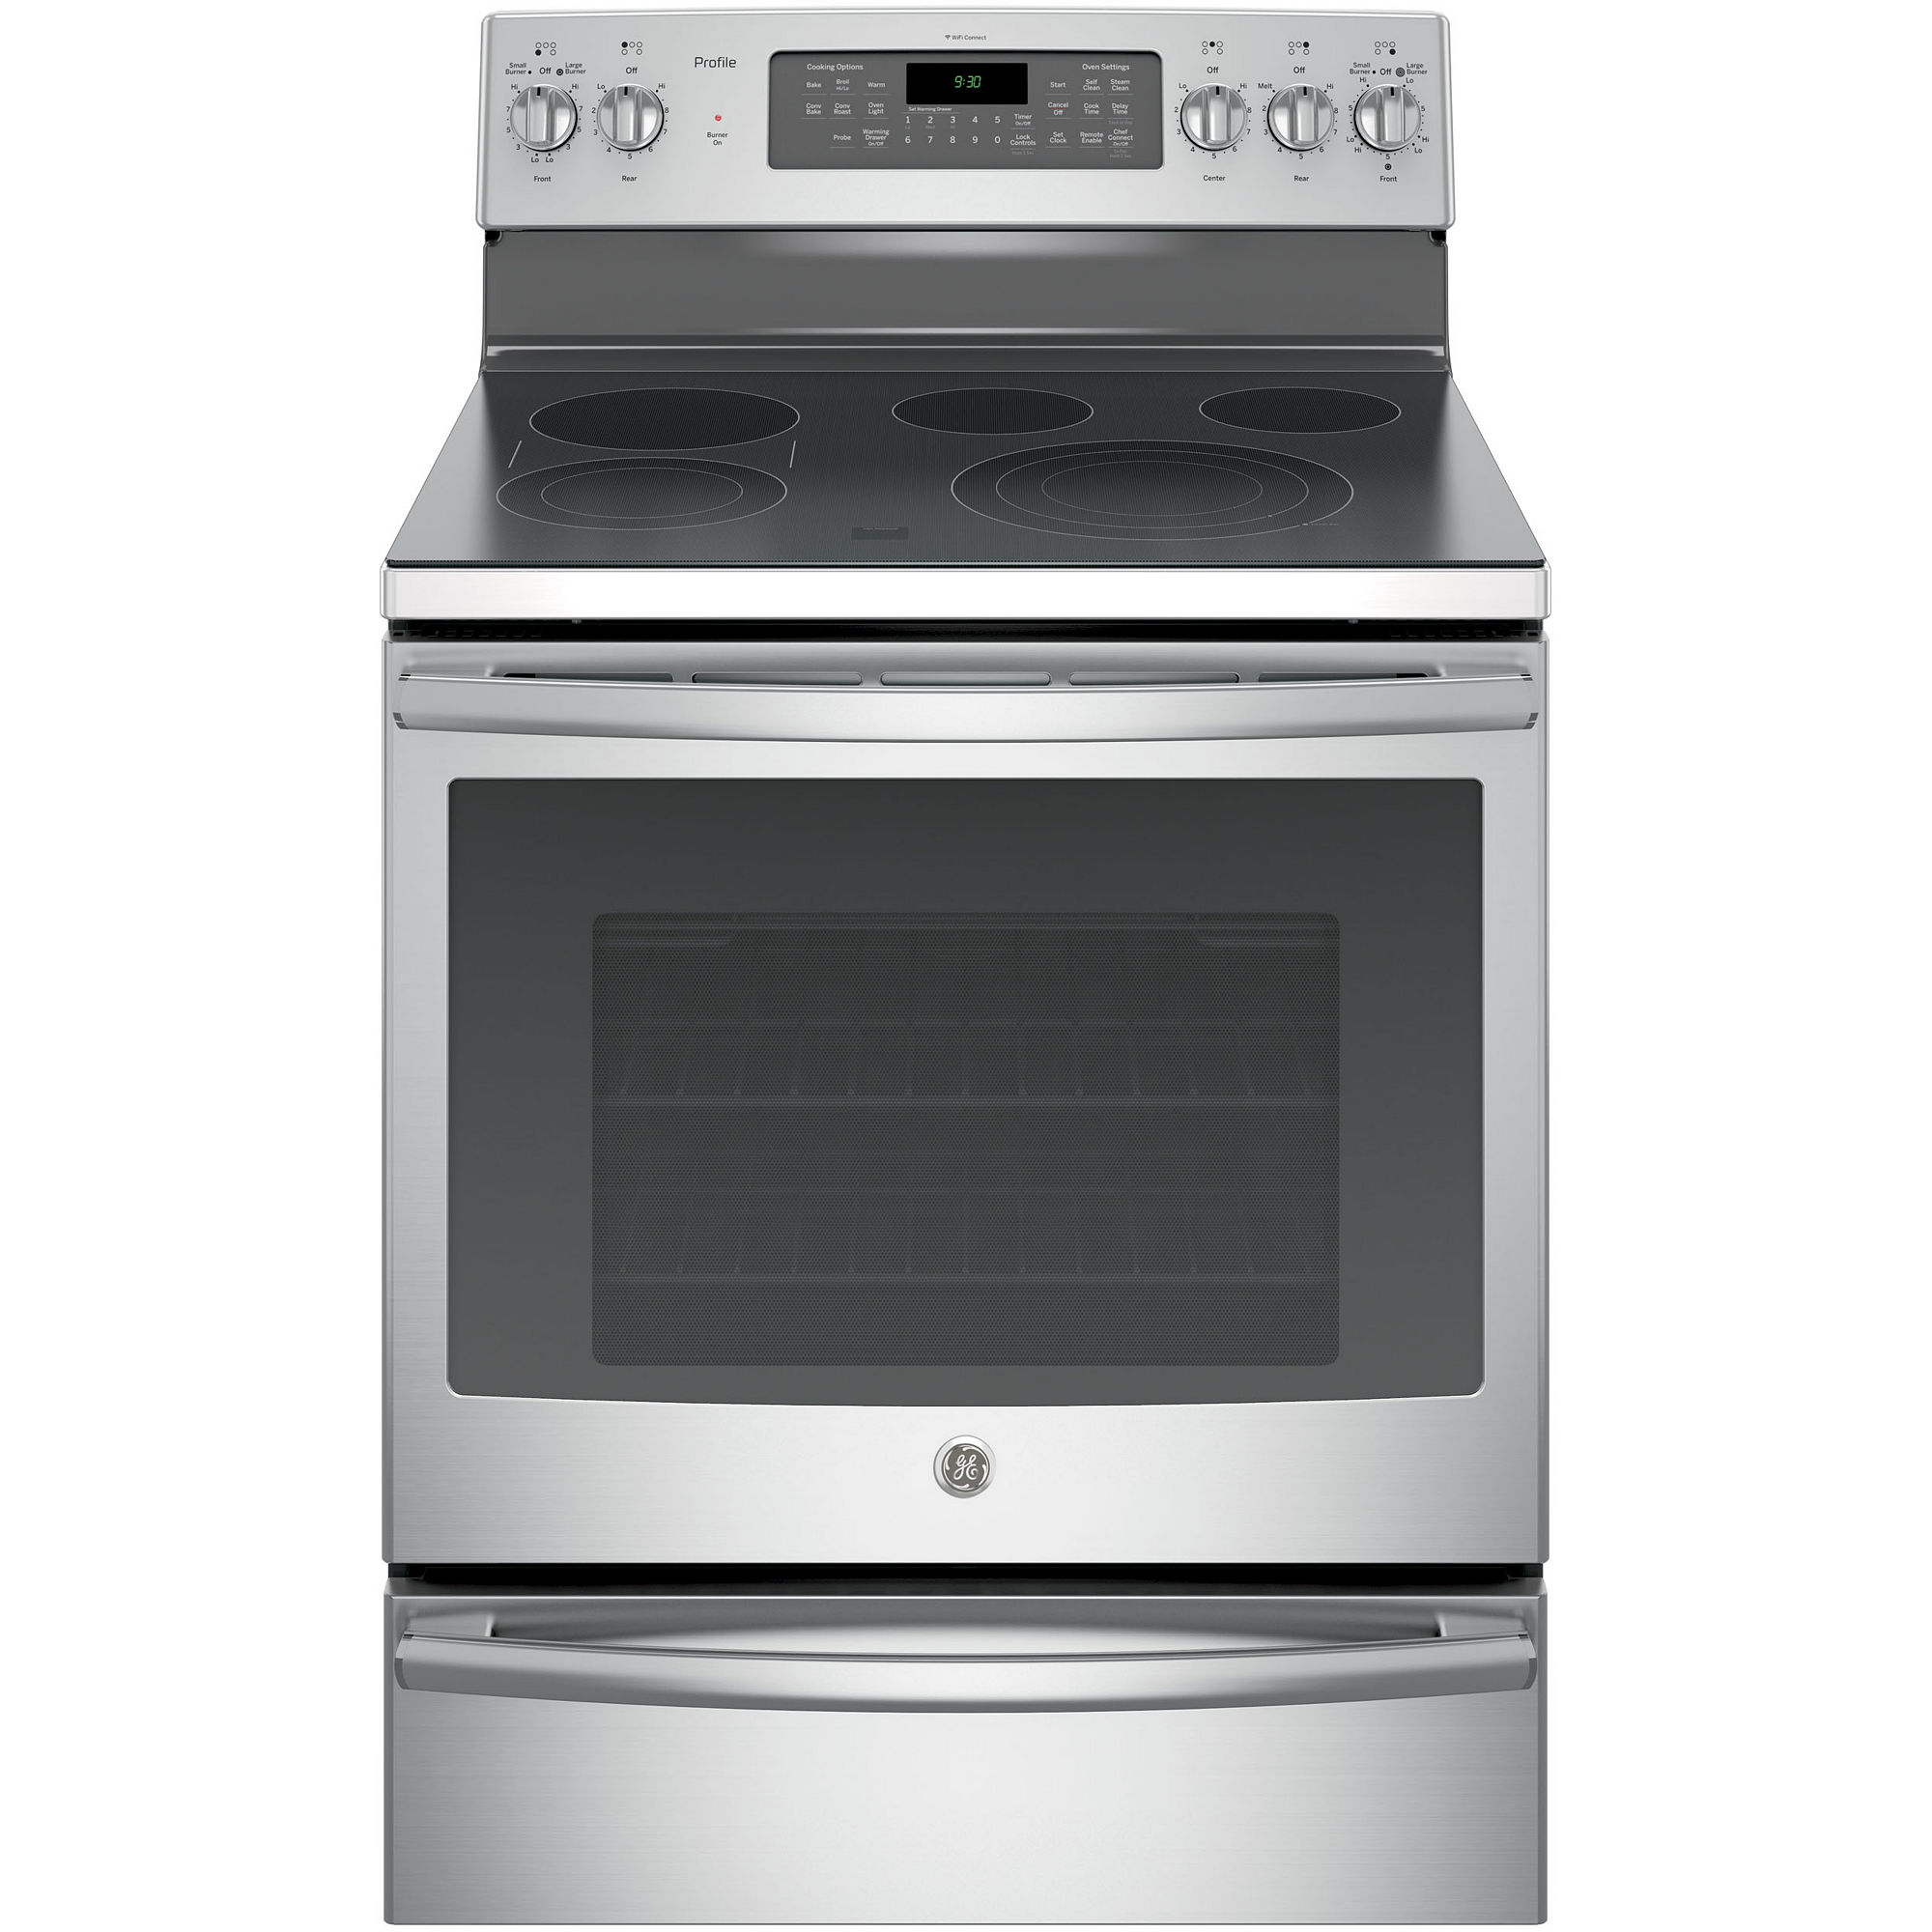 """GE Profile 30"""" 5.3 Cu. Ft. Electric Range with Convection Oven and Warming Drawer - PB930SJSS"""